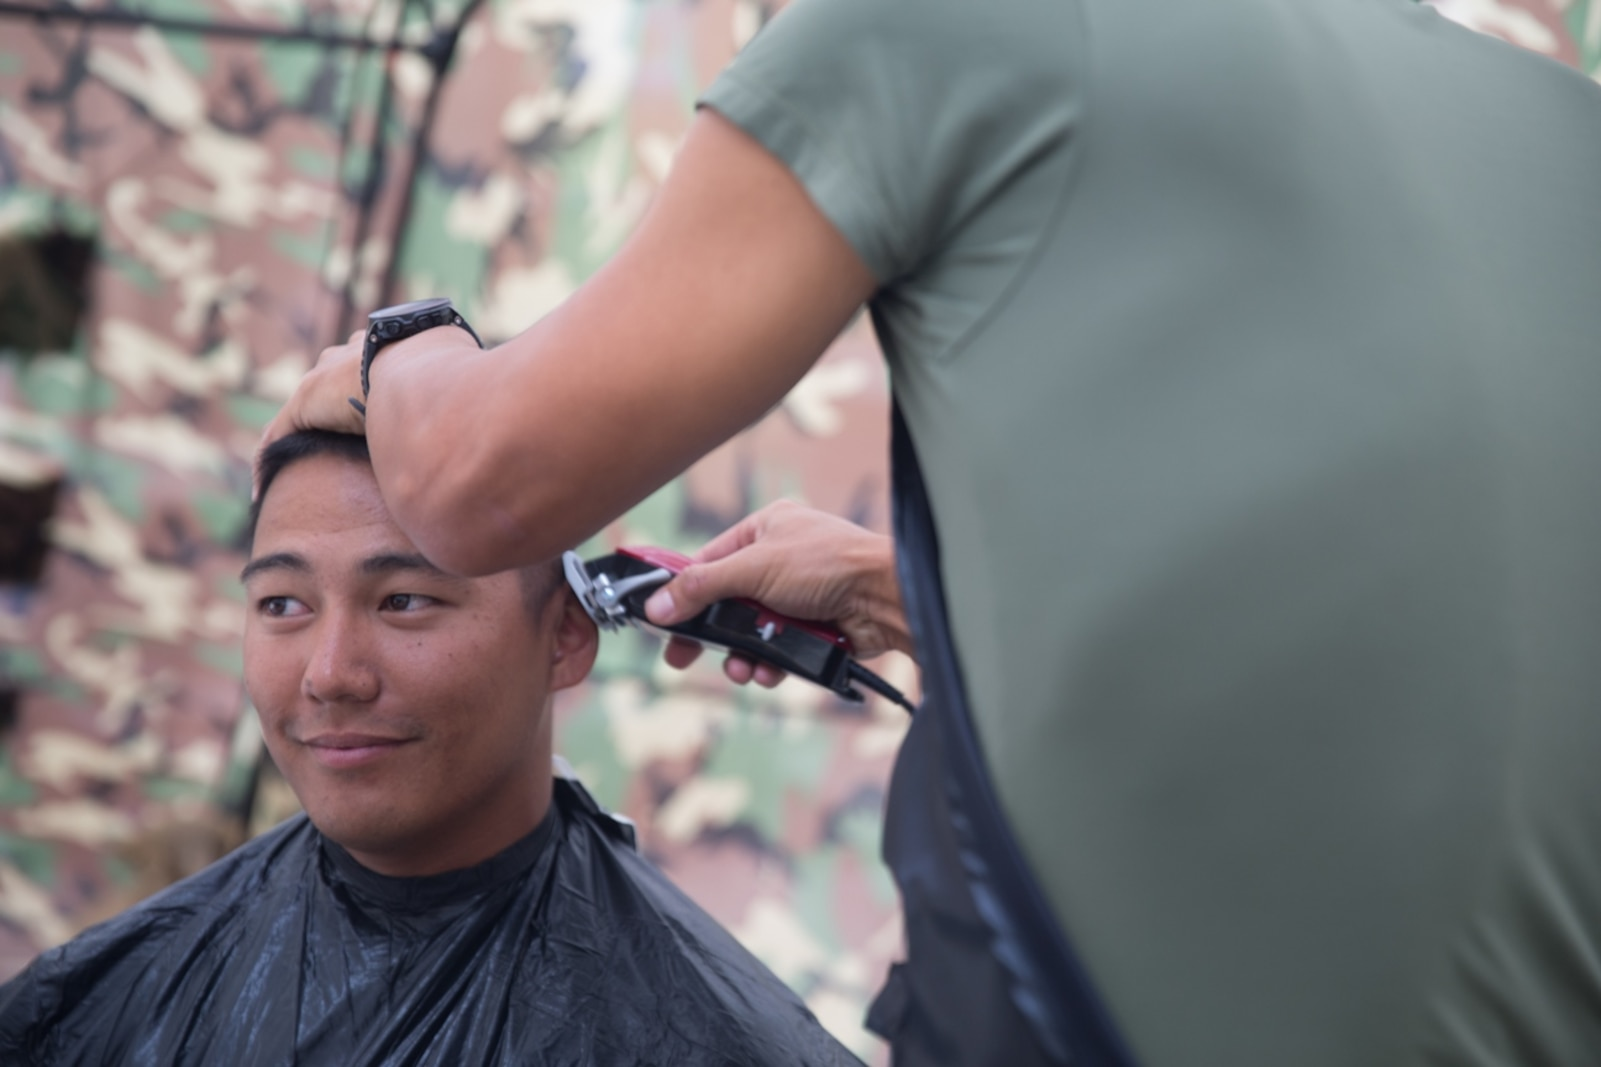 BRIDGEPORT, CALIF. - U.S. Navy LT. Mark Won, the chaplain for Combat Logistics Battalion 5, Combat Logistics Regiment 1, 1st Marine Logistics Group, cuts Second Lieutenant Karl Watje's hair during the Mountain Training Exercise 4-17 on the Marine Corps Mountain Warfare Training Center July 31, 2017. (U.S. Marine Corps photo by Lance Cpl. Timothy Shoemaker)